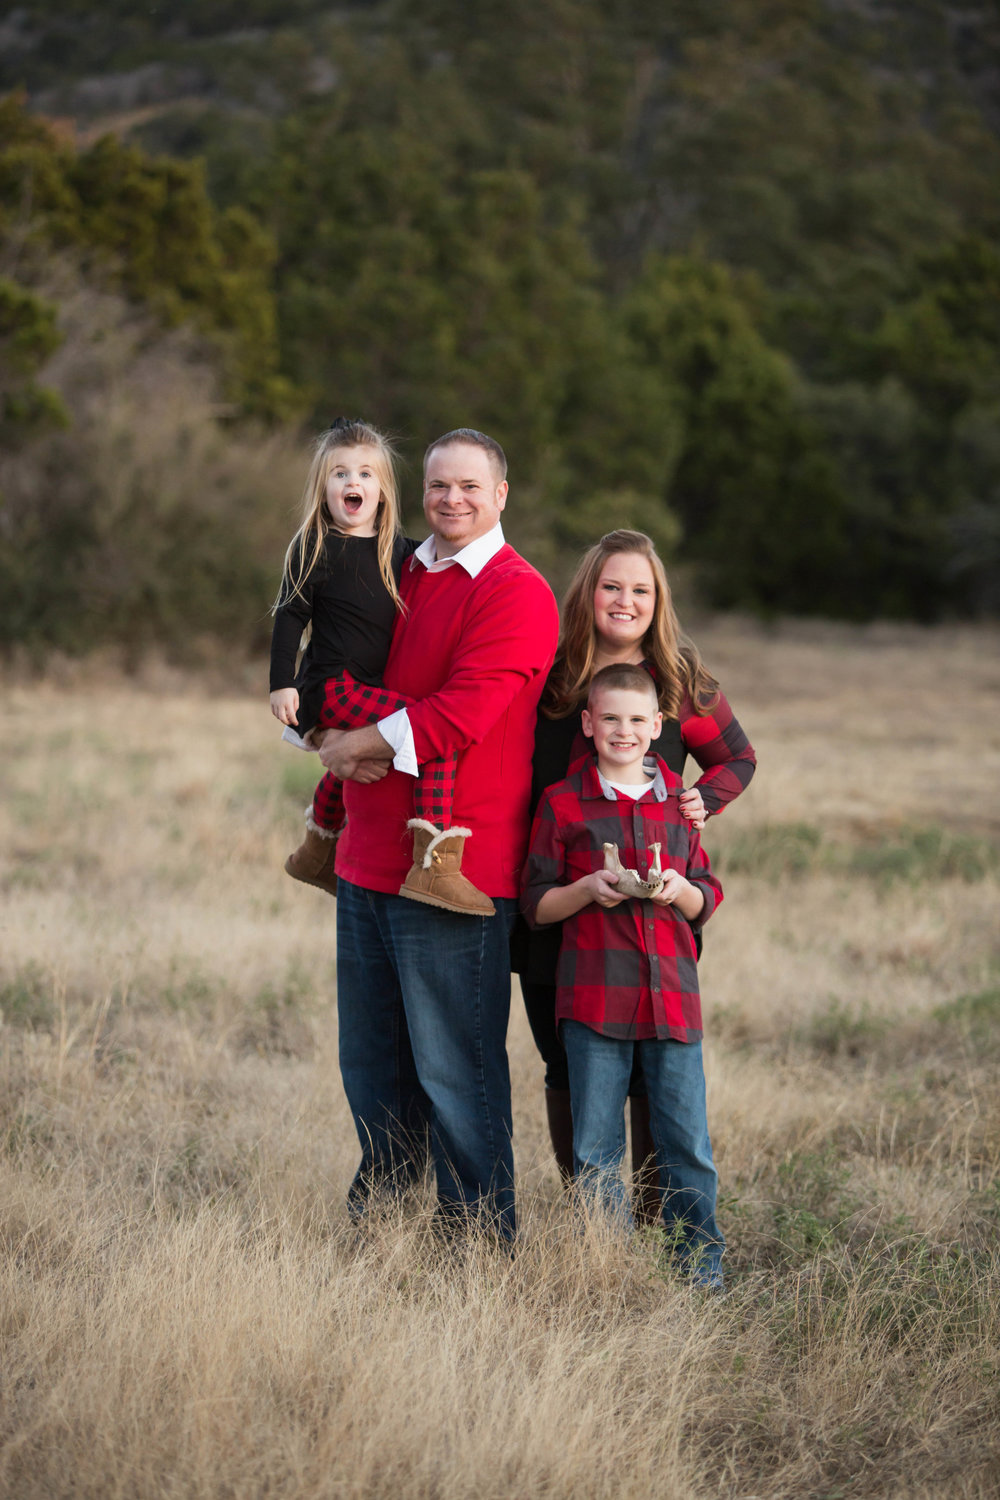 Marble_Falls_Sternad_Family_Photographer_Jenna_Petty_14.jpg